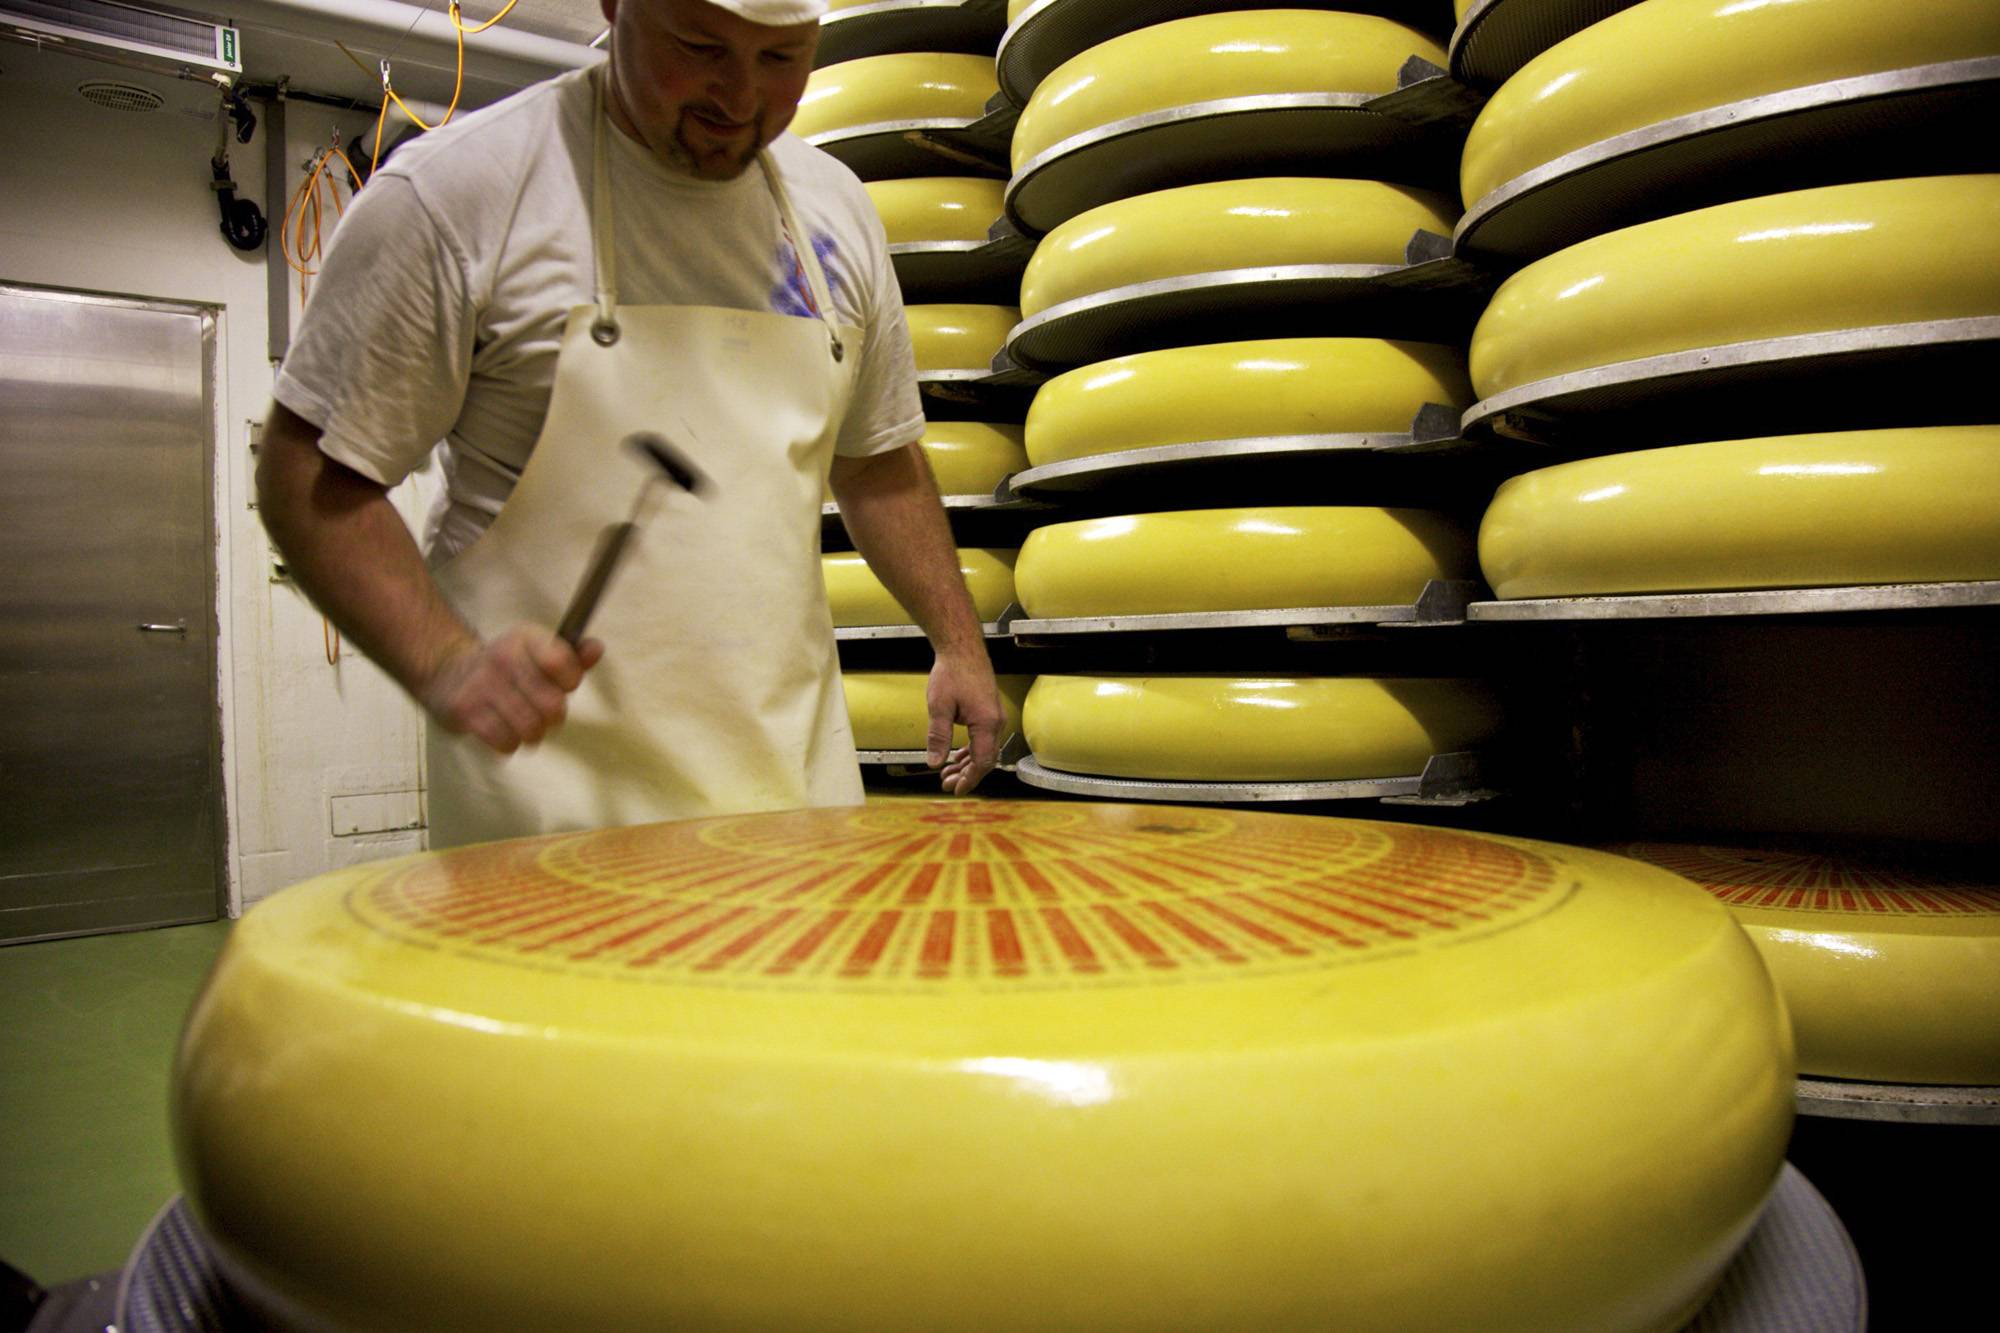 An employee tests a whole Emmentaler Switzerland AOC cheese for holes in the salting cellar at the Hupfenboden dairy in Trubschachen, Switzerland, in 2011. Since Vladimir Putin�s government banned many food imports from nations supporting sanctions due to the country�s role in the Ukraine crisis, neutral Switzerland finds itself with an edge in selling cheese to 142.5 million Russians.